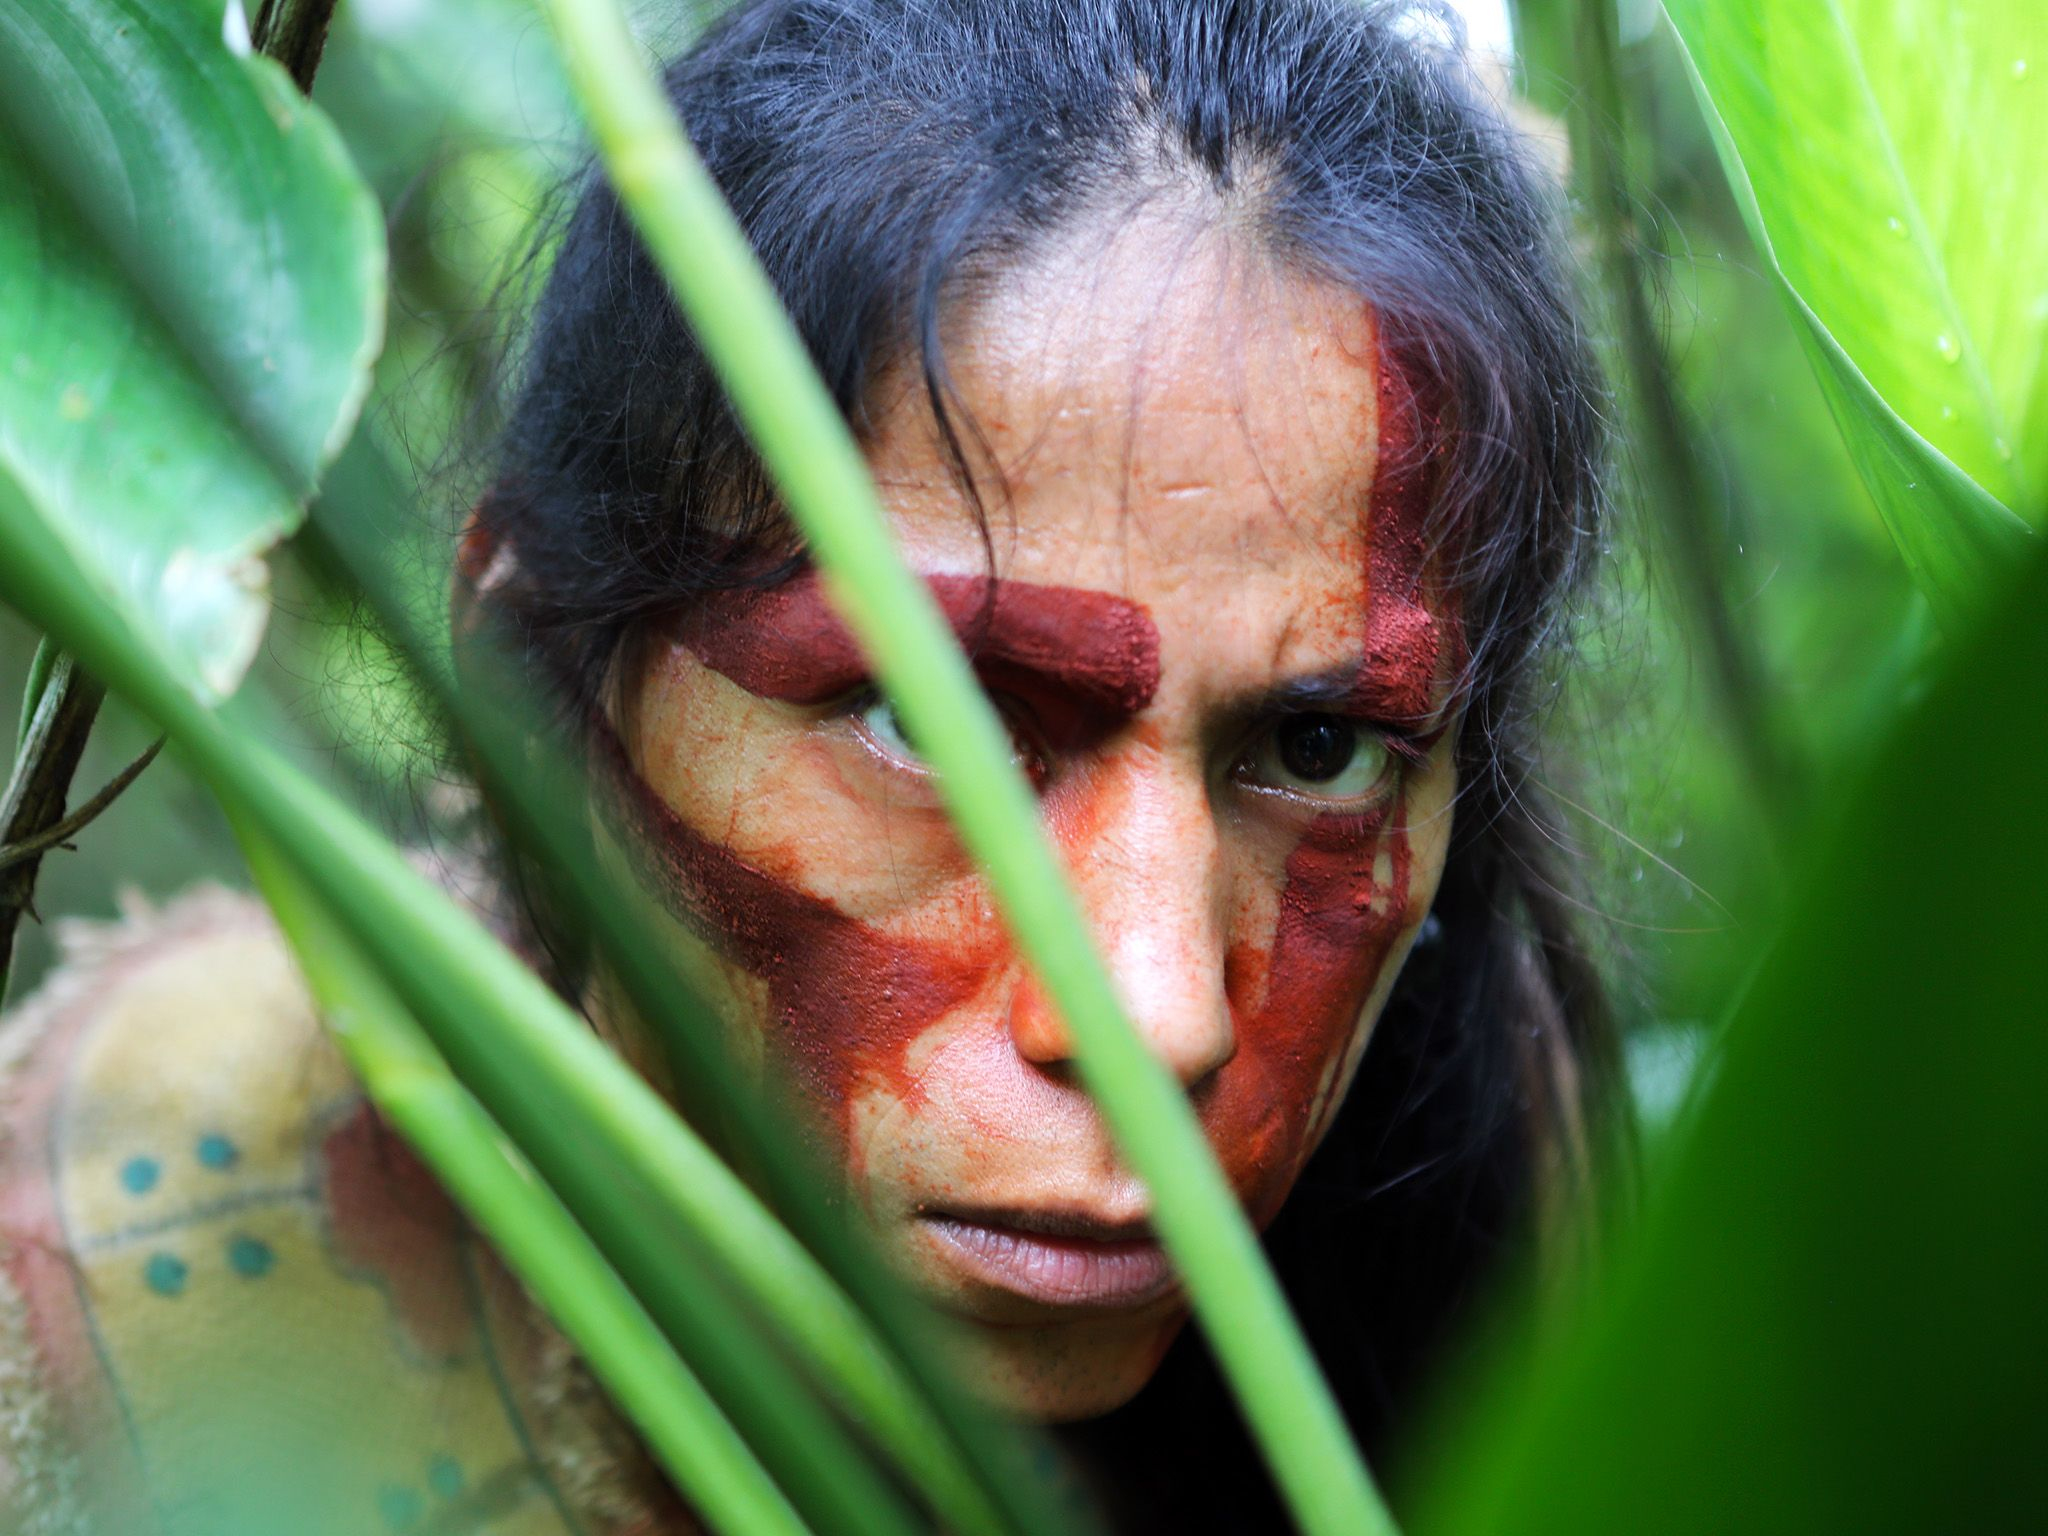 Dramatization: A mystery native person of La Mosquitia, Honduras. This image is from Legend of... [Photo of the day - October 2015]